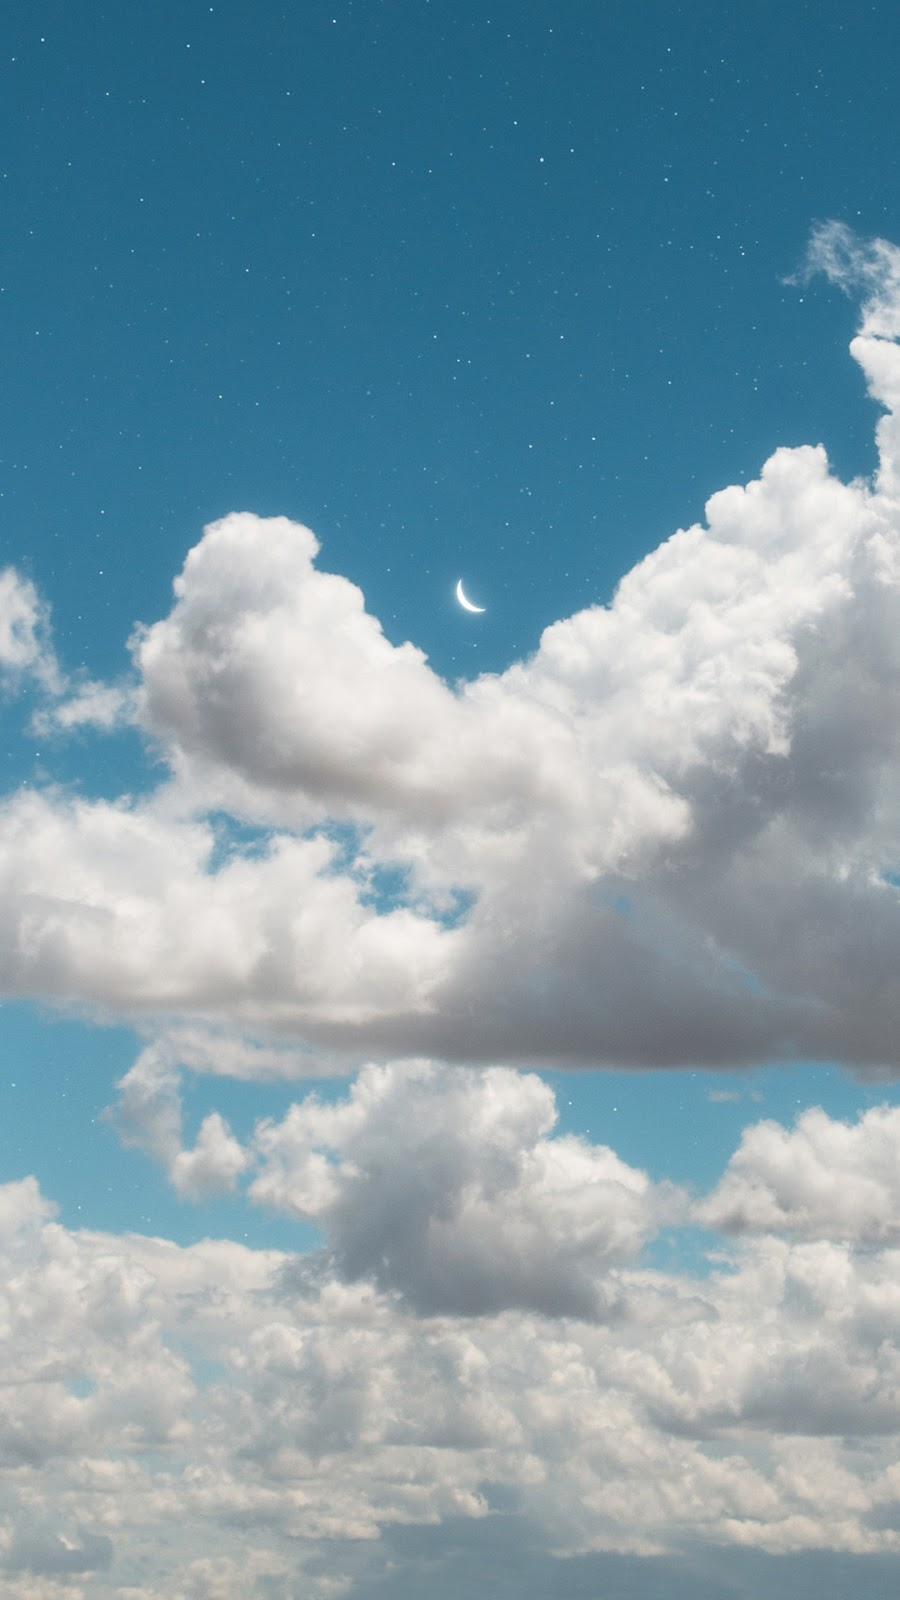 Crescent moon in the blue sky